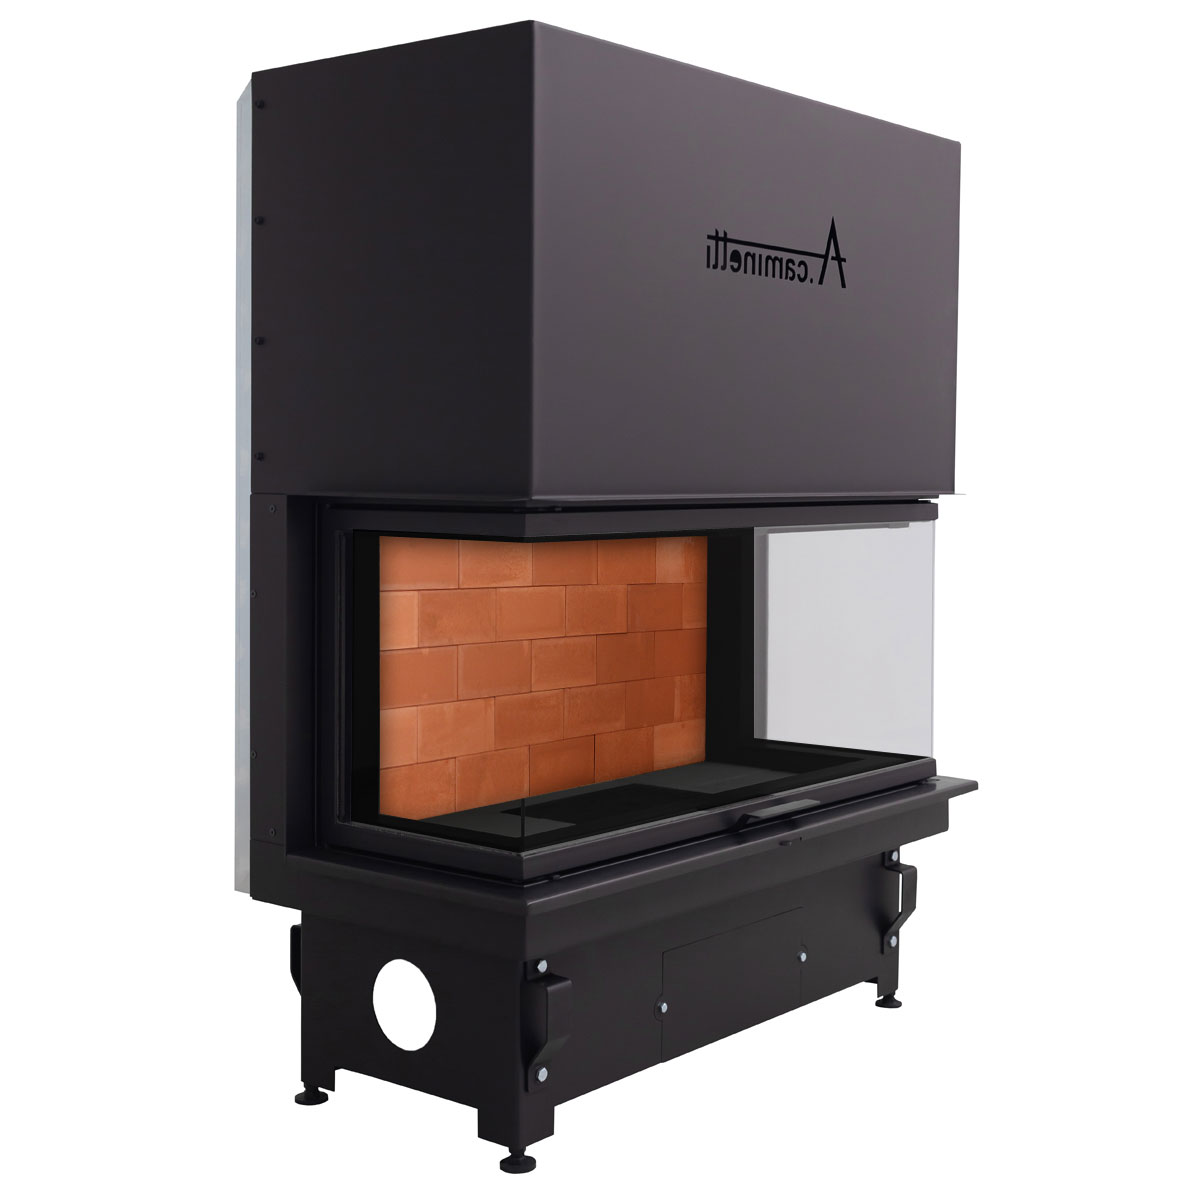 ACAMINETTI Wood Fireplace 3-Sided Crystal 110 Max Red bricks